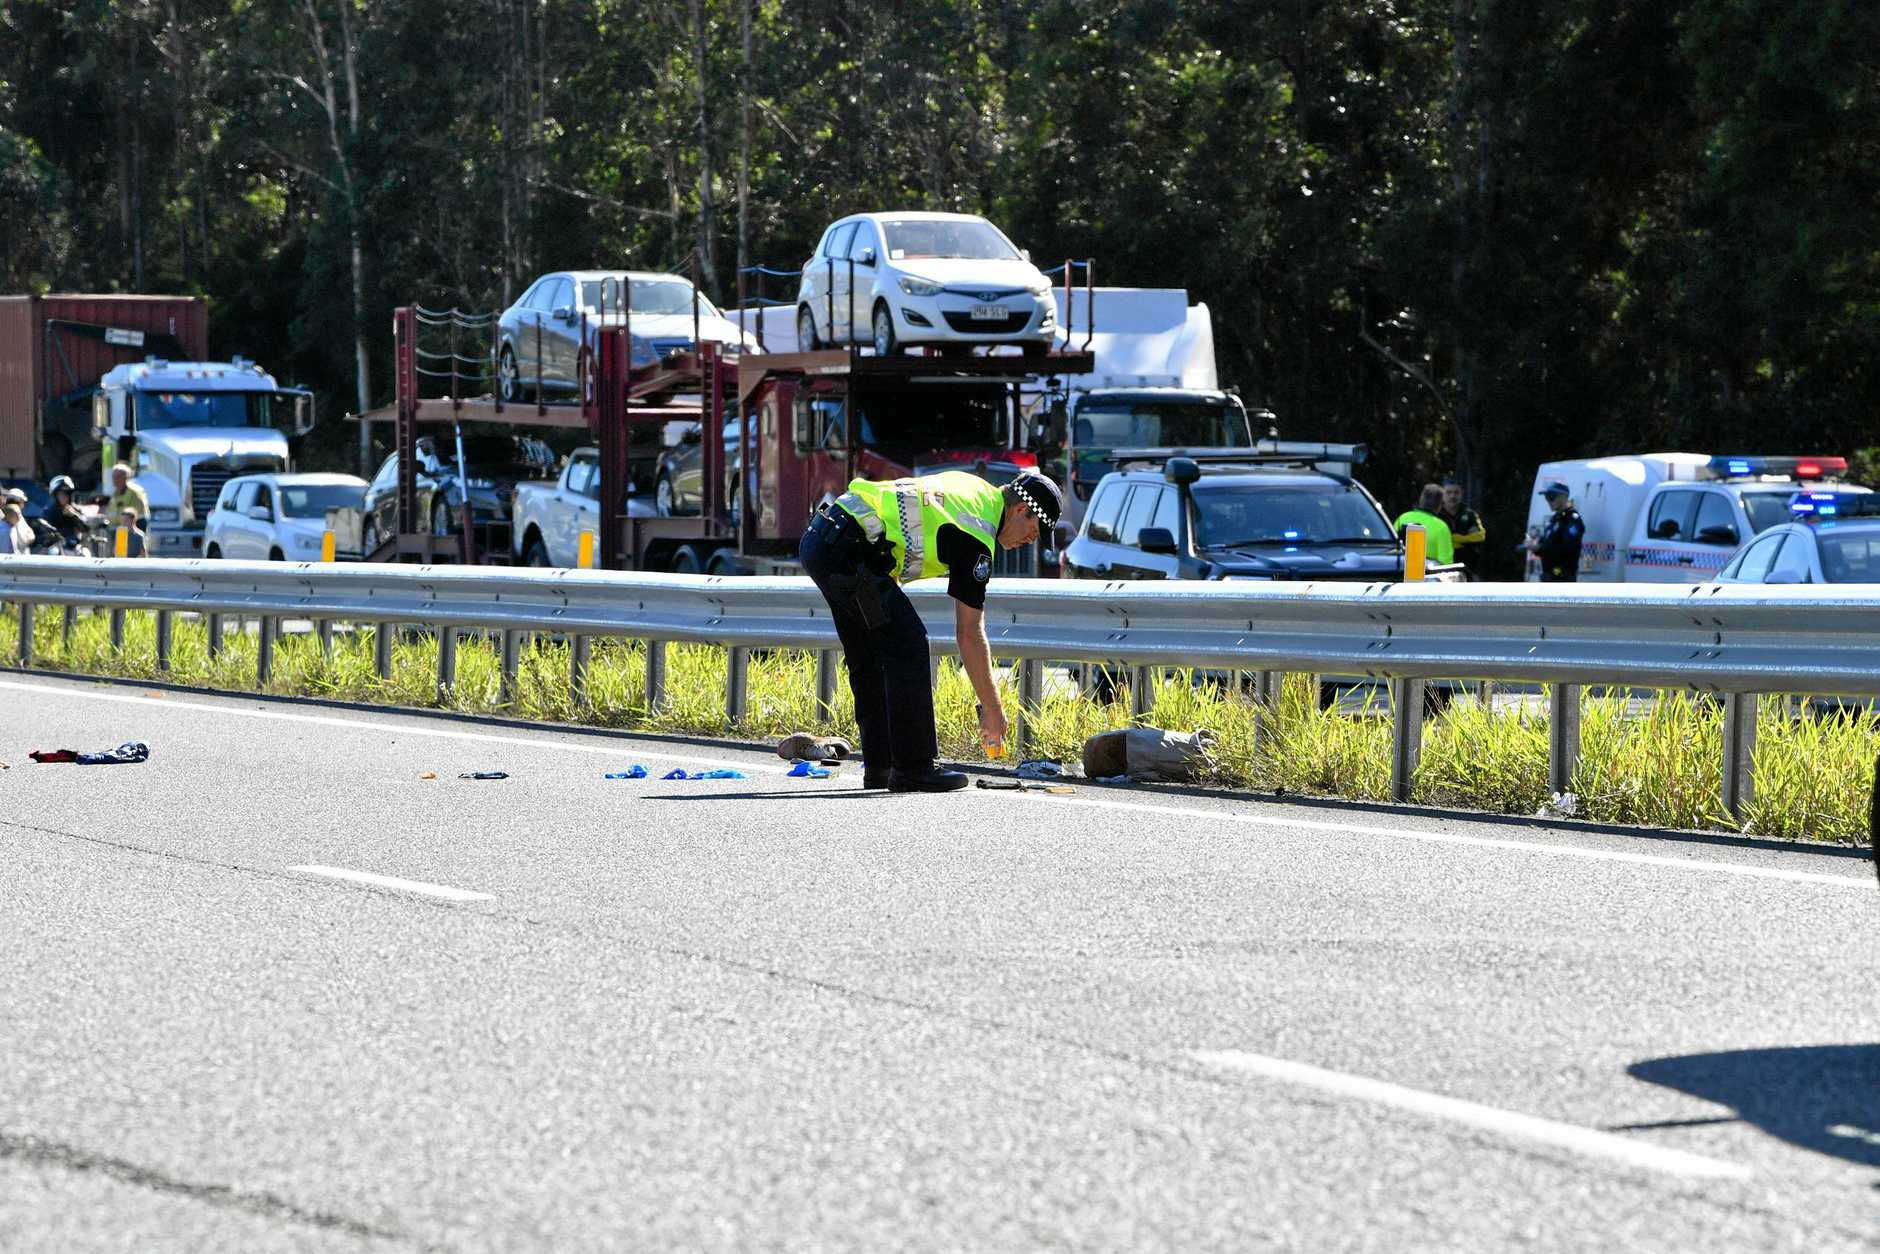 The police chased a car from north of Gympie and dozens of police apprehended a man near Parklands, just north of Nambour on the Bruce Highway. Traffic was stopped in both directions for several hours.